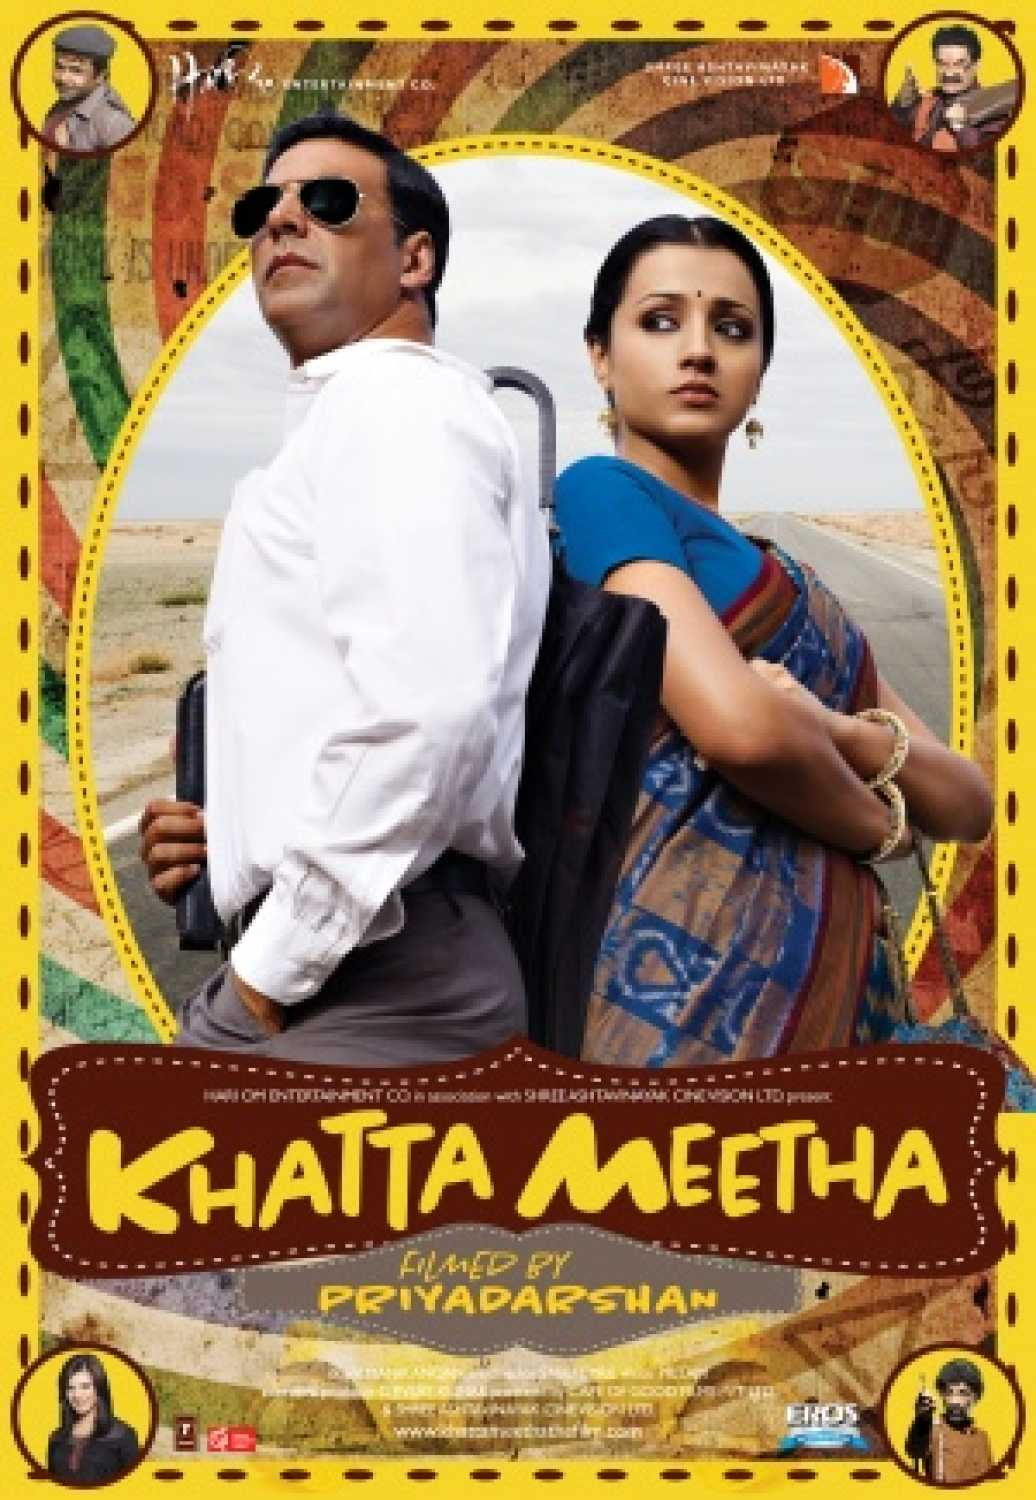 Khatta Meetha Day-wise Box Office Collection & Worldwide